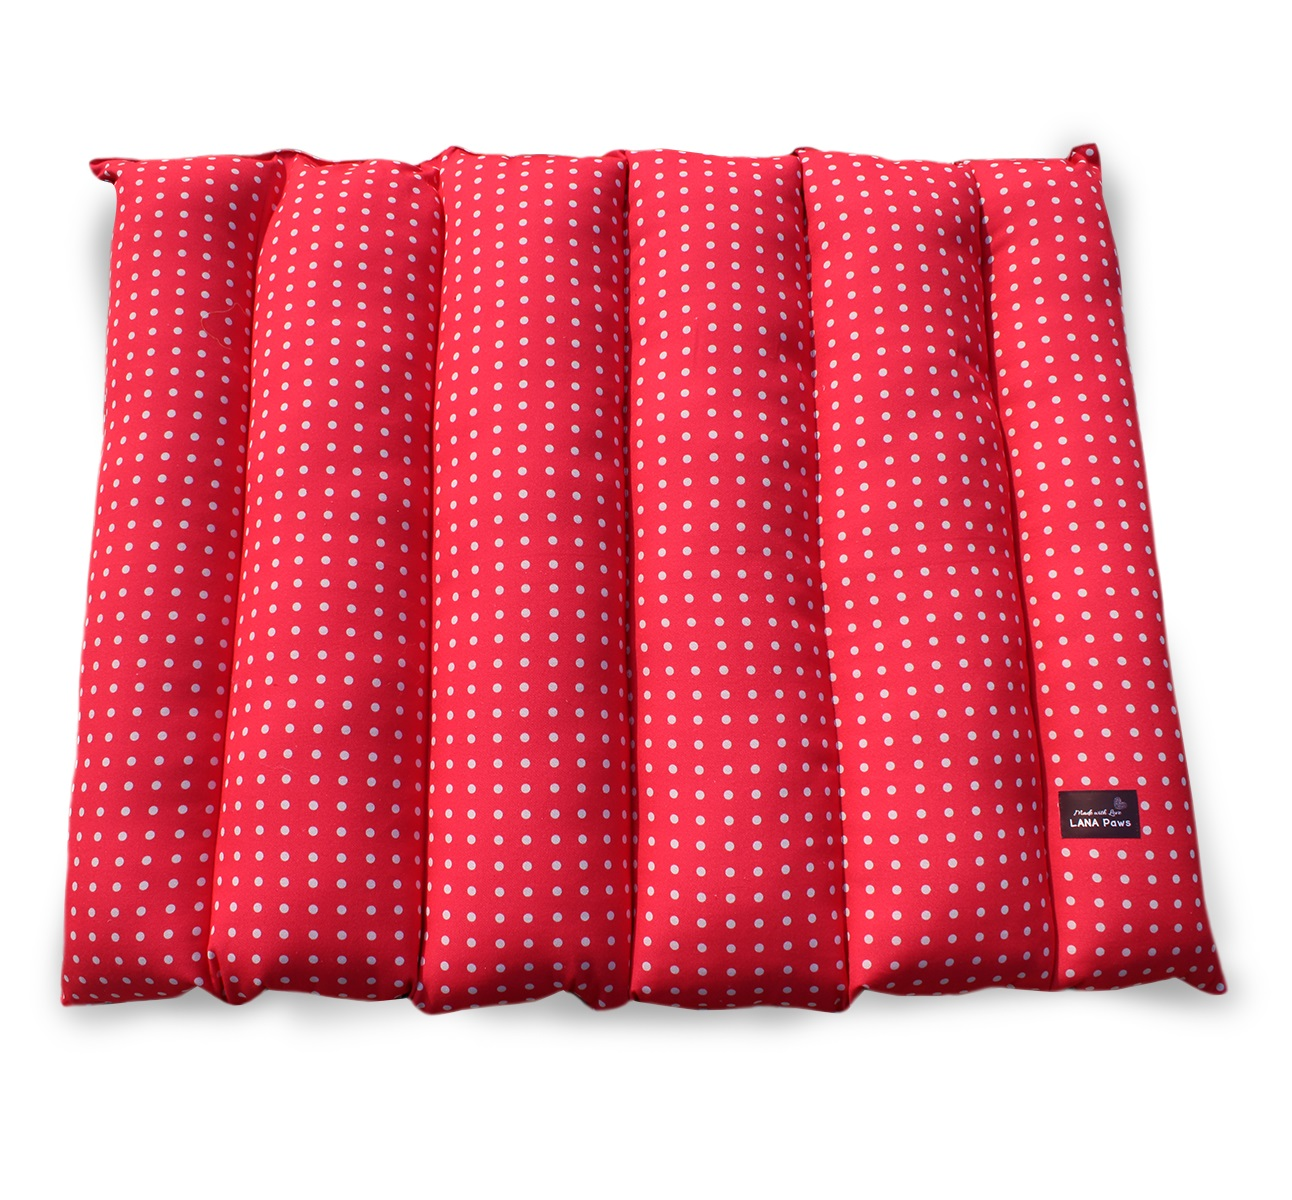 LANA Paws The Pink Polka Dog Mat - 30 X 36 X 4 inches